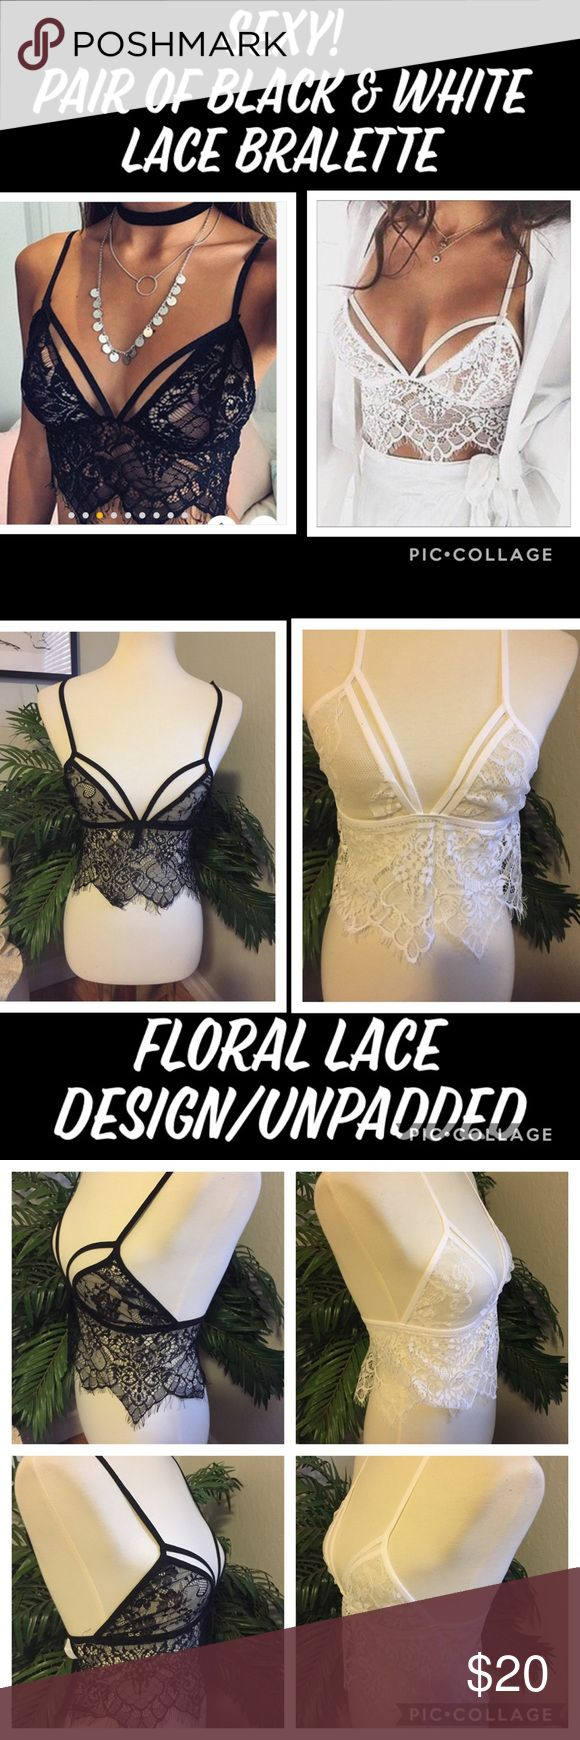 Feminine! Floral Lace Bralette M This is just too sexy! This floral lace unpadde…